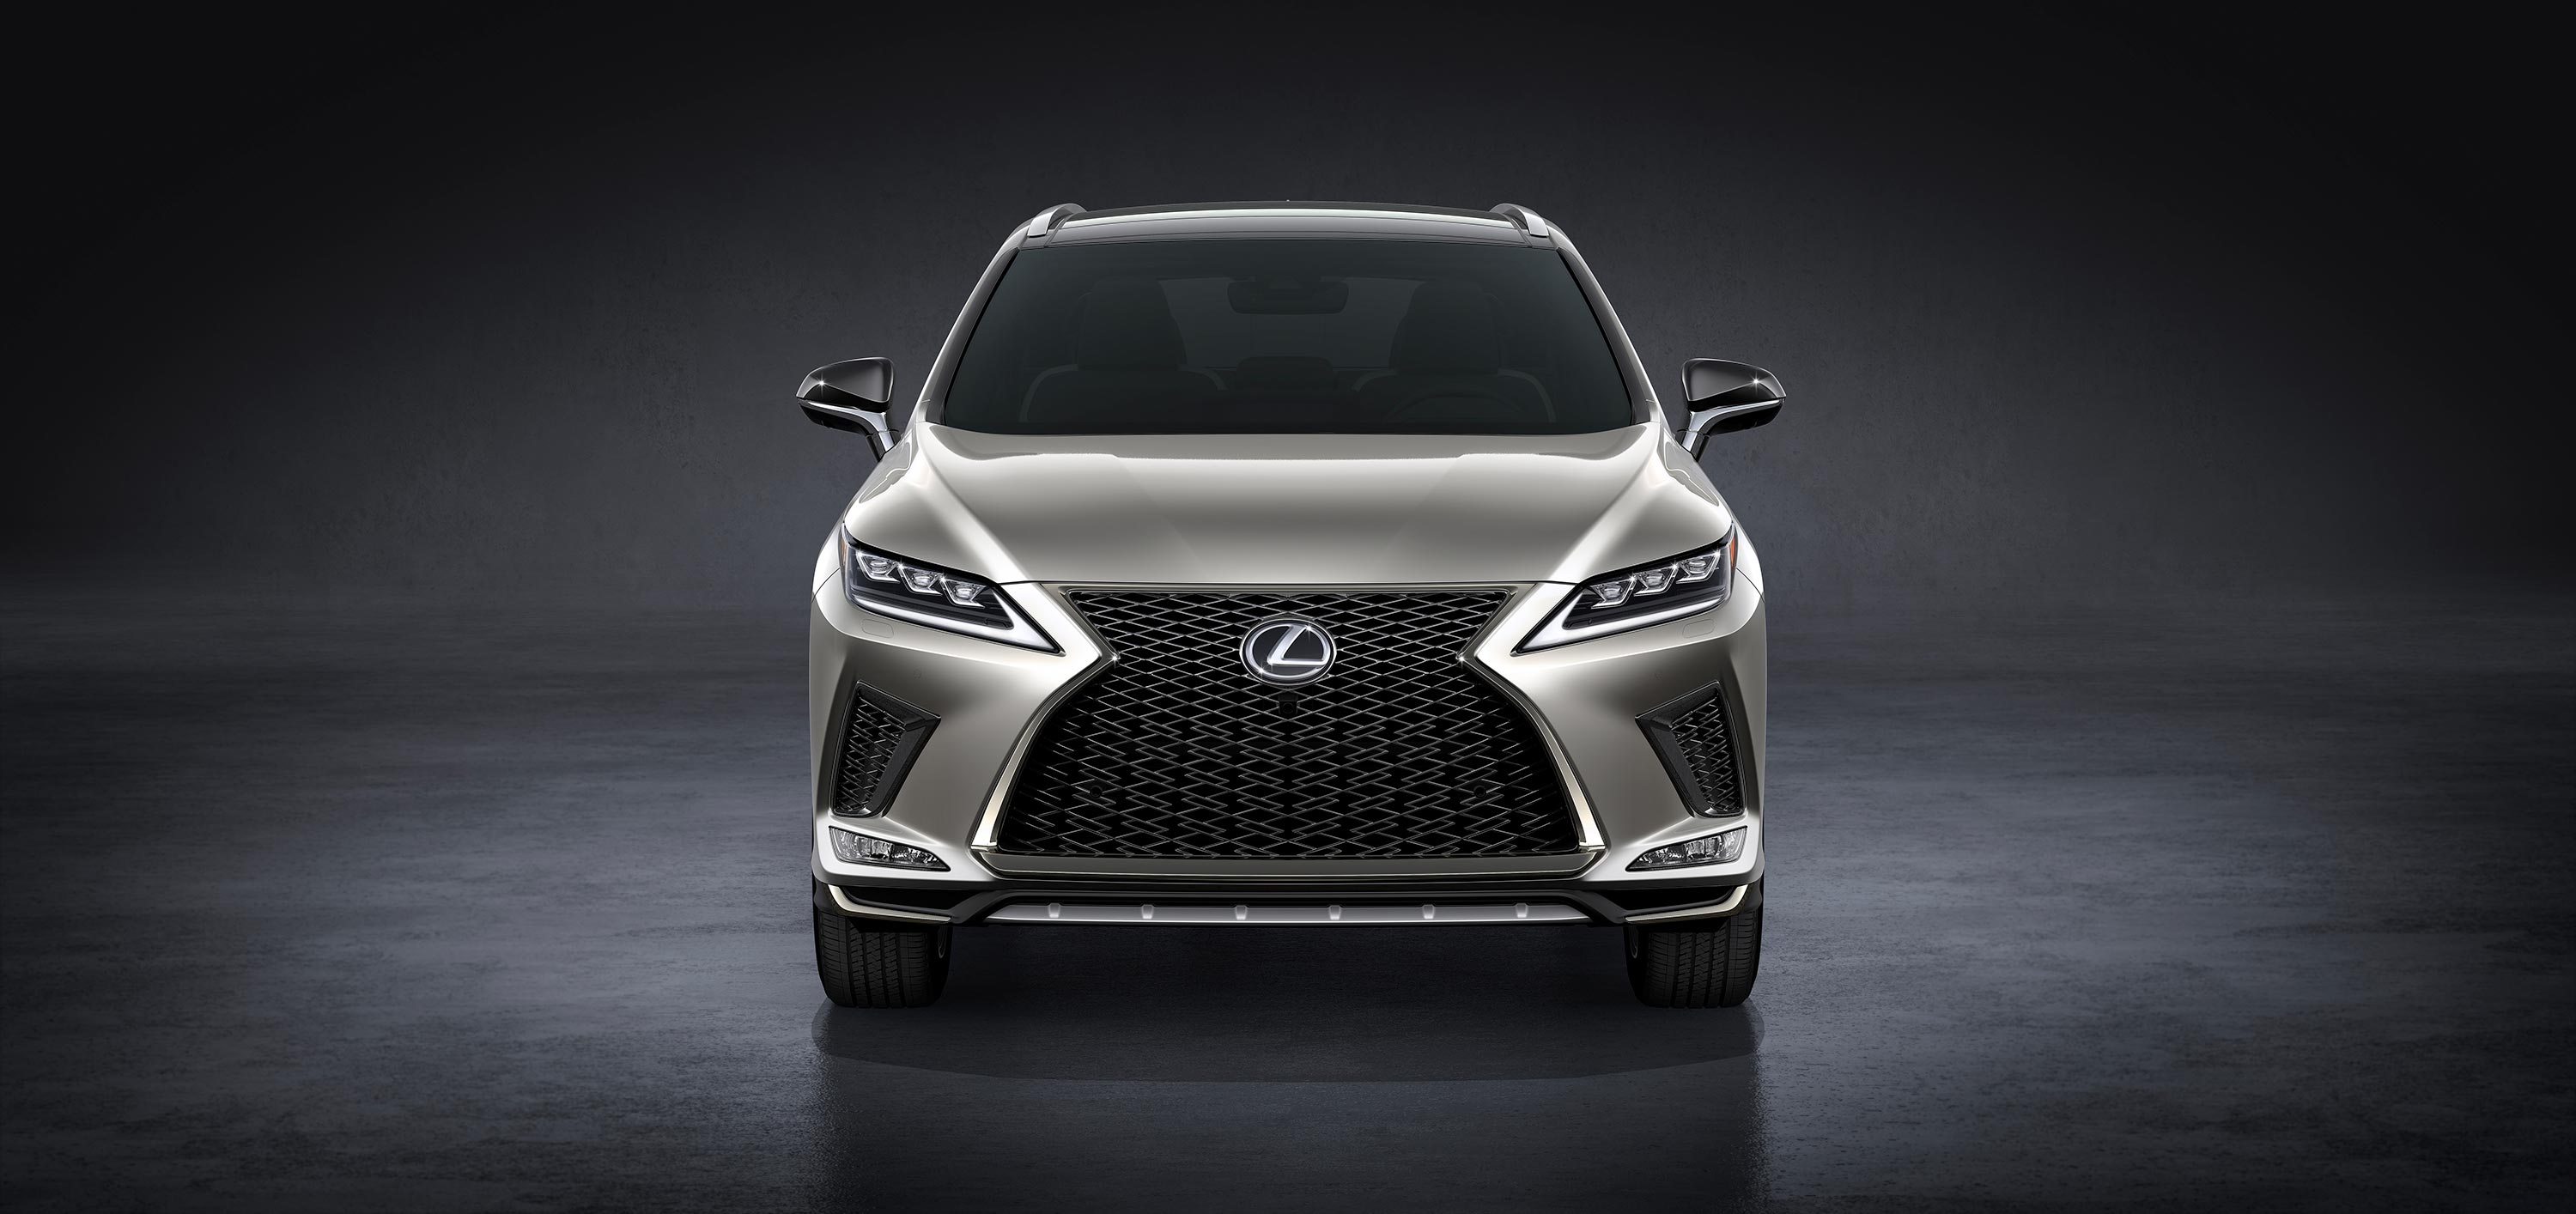 New Lexus Rx >> Photo Gallery: The Updated 2020 Lexus RX & RX F SPORT | Lexus Enthusiast